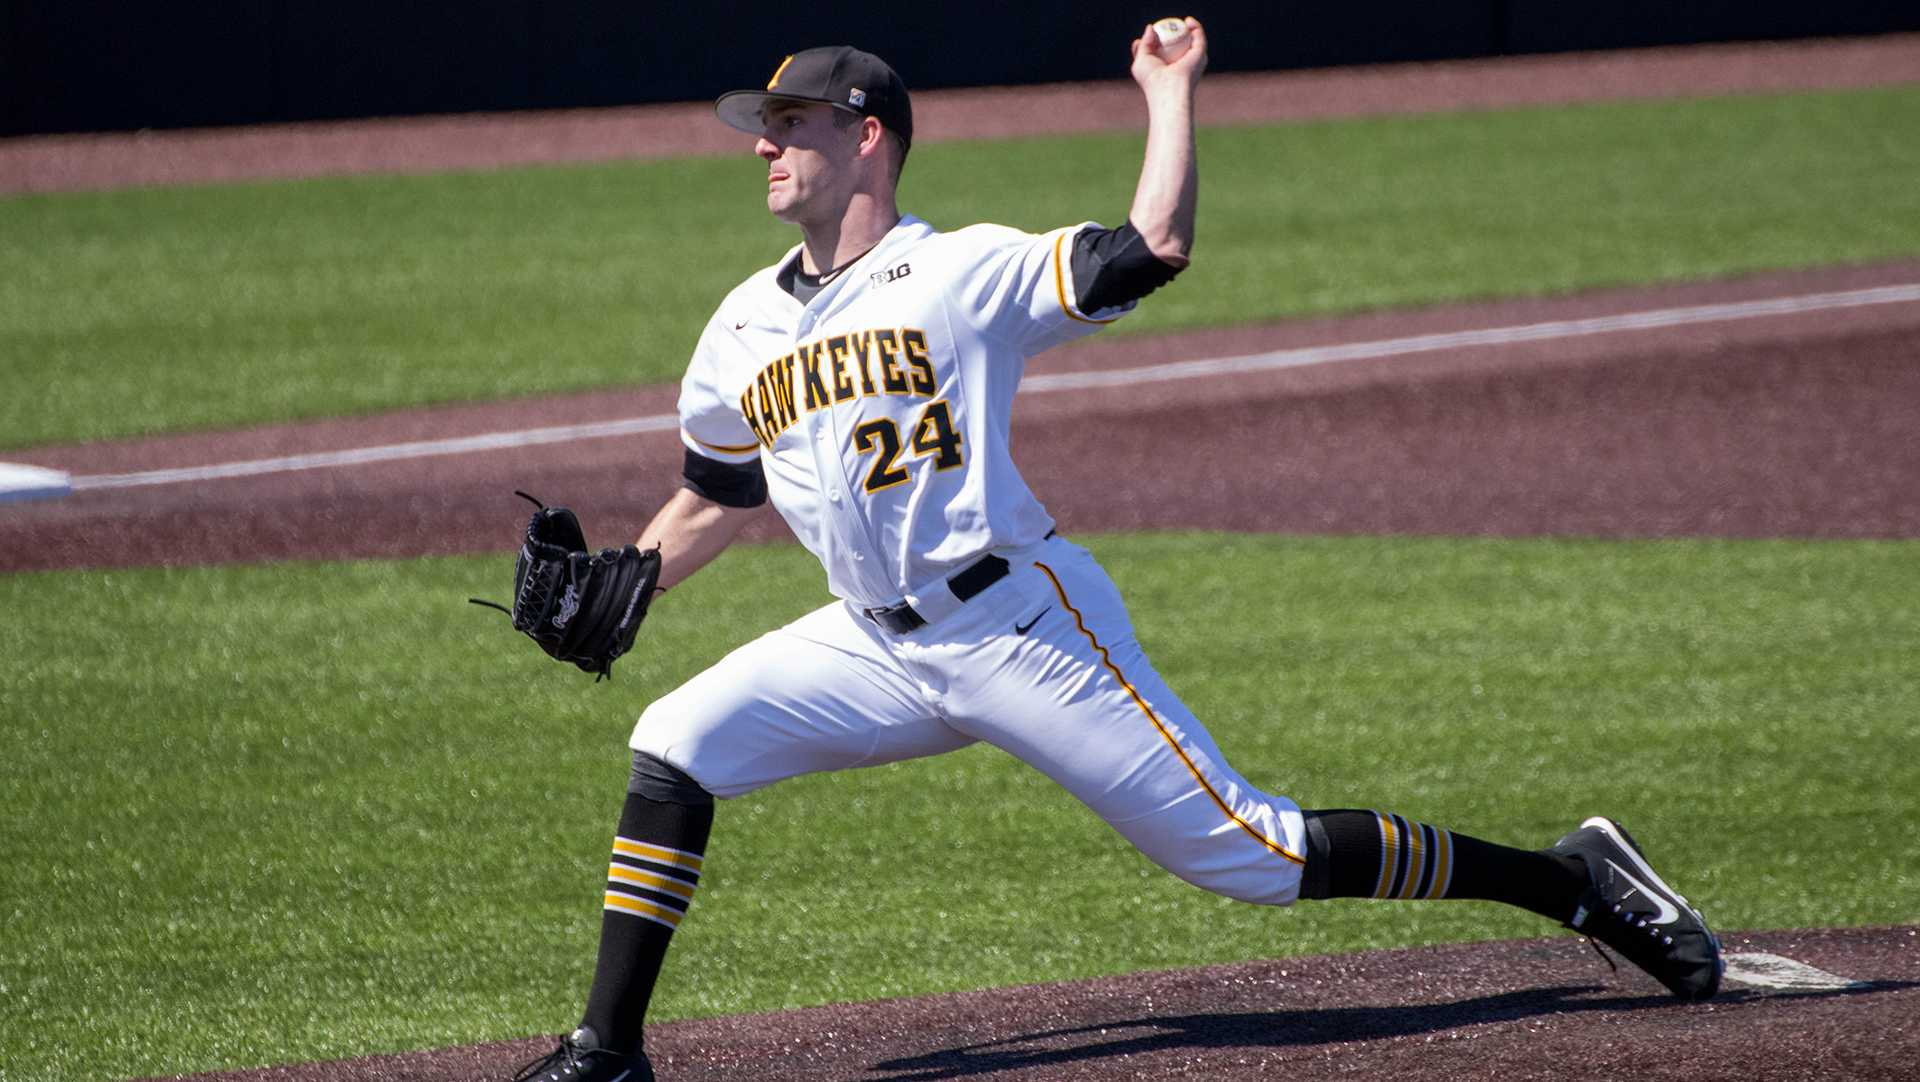 Nick Allgeyer pitches during Iowa baseball vs. Ohio State at Duane Banks Field on April 7, 2018. The Hawkeyes were defeated 2-1. (Megan Nagorzanski/The Daily Iowan)